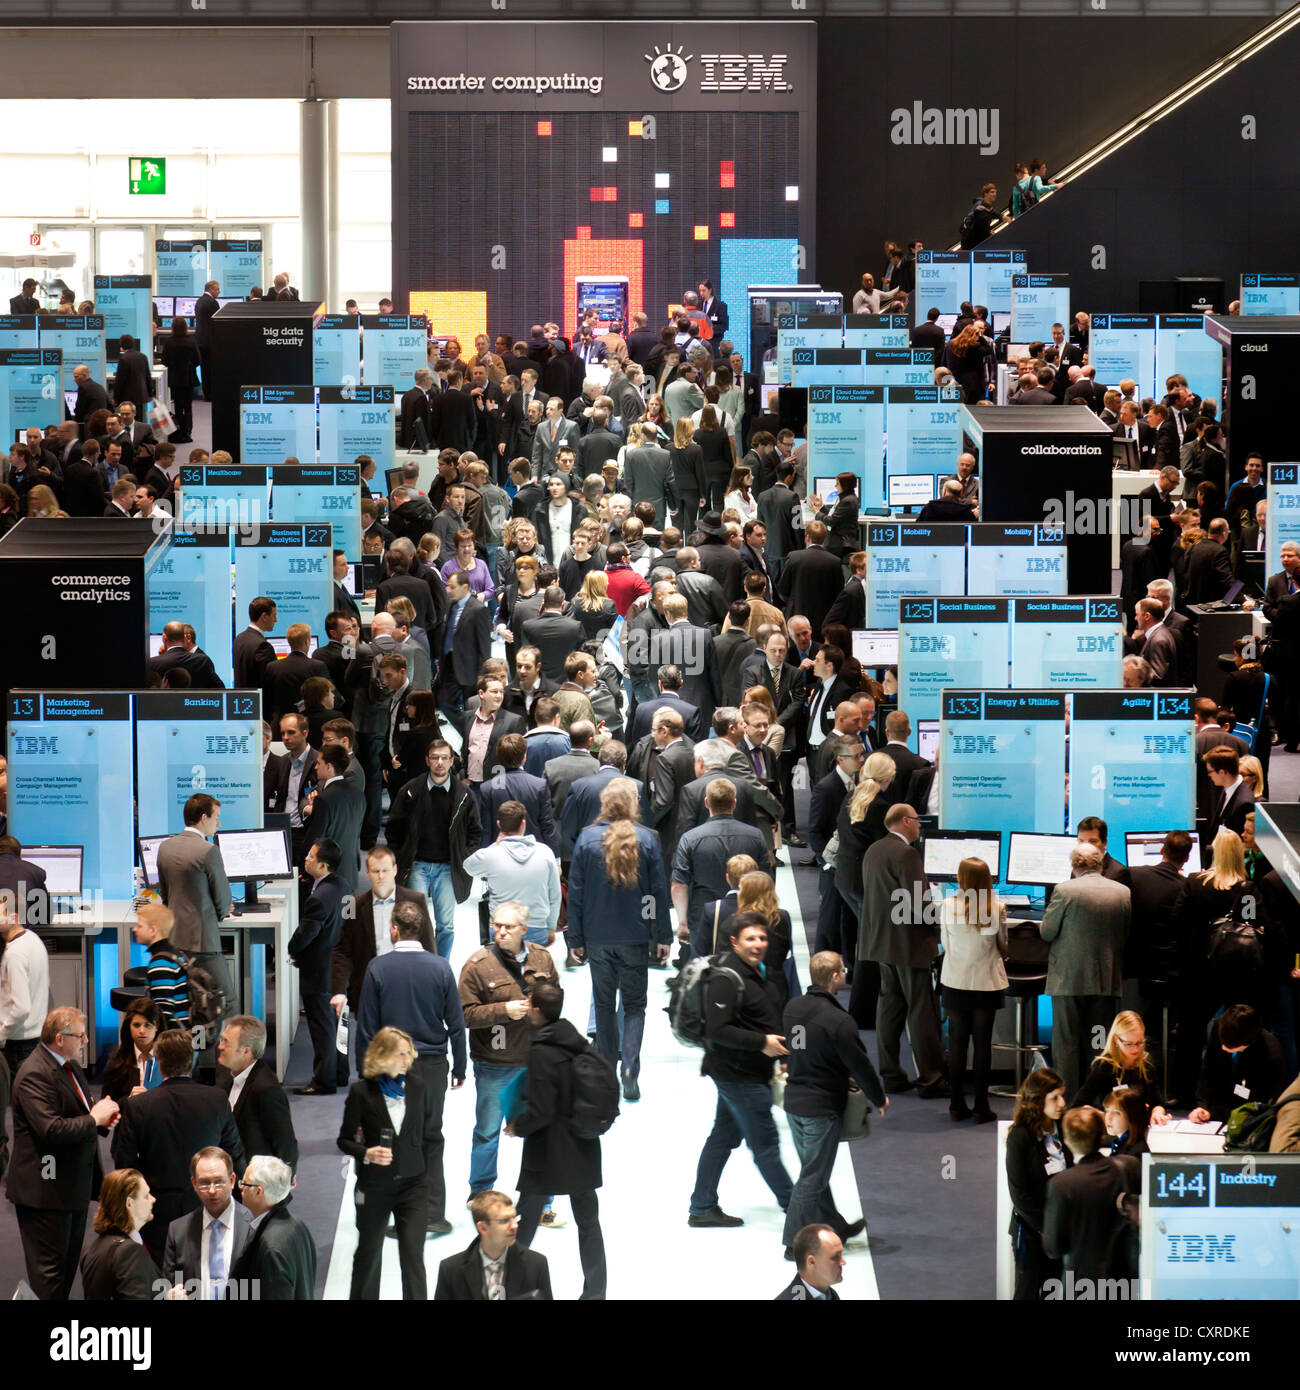 Exhibition stand of IBM, a technology and consulting corporation, CeBIT international computer expo, Hannover, Lower - Stock Image